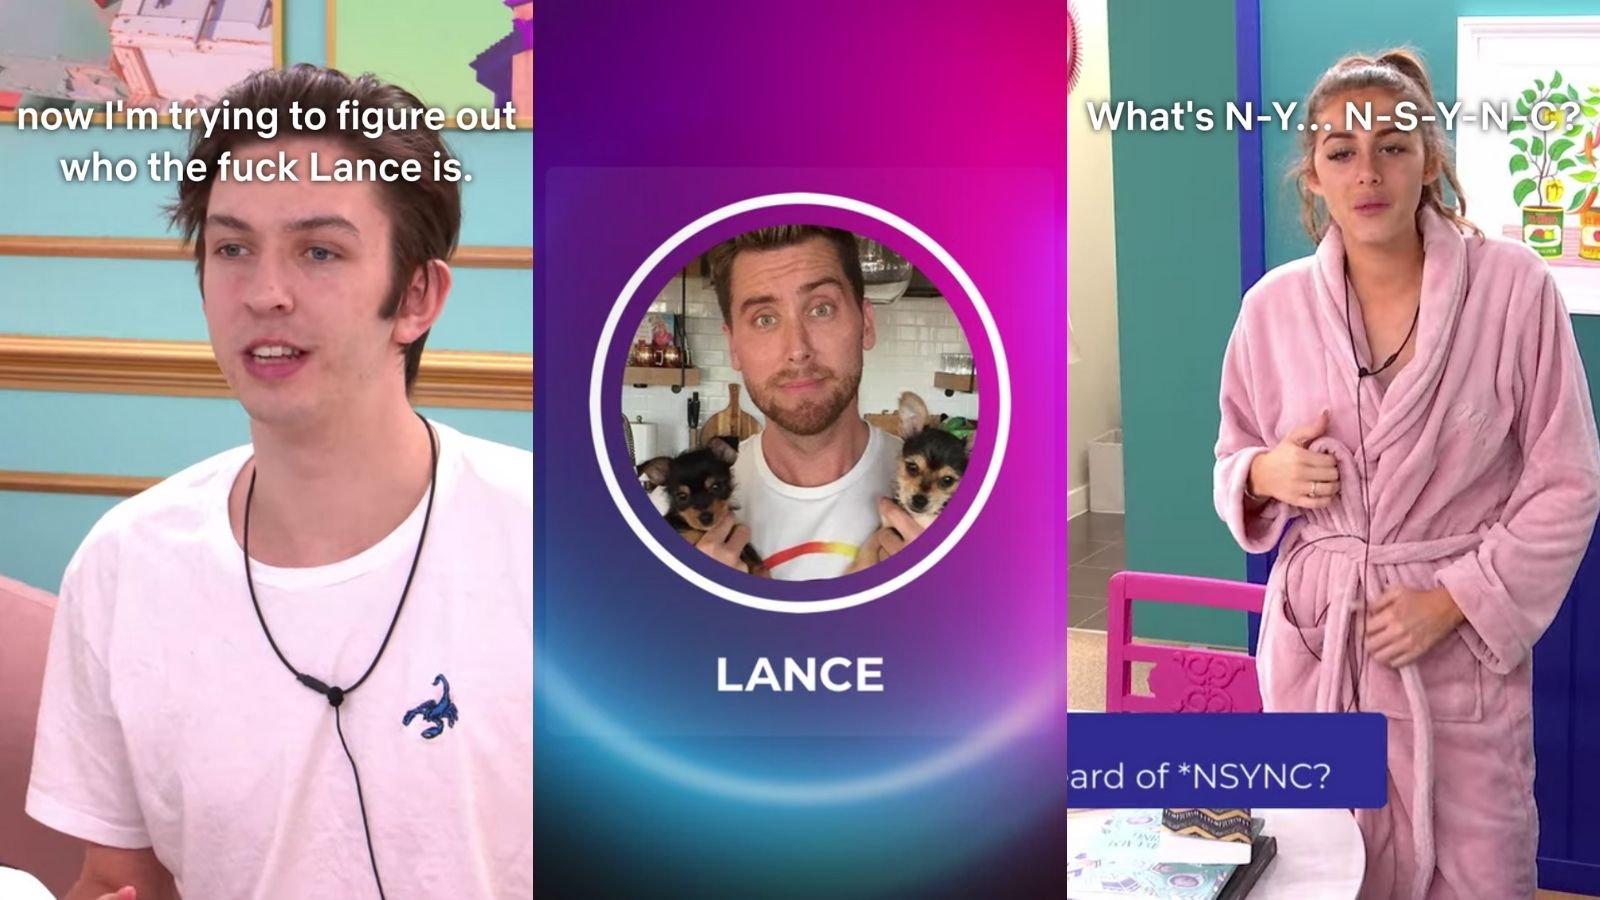 Jack, Lance Bass, and Chloe from the second season of 'The Circle,' the former and latter wondering aloud who 'Lance' and 'NSYNC' are